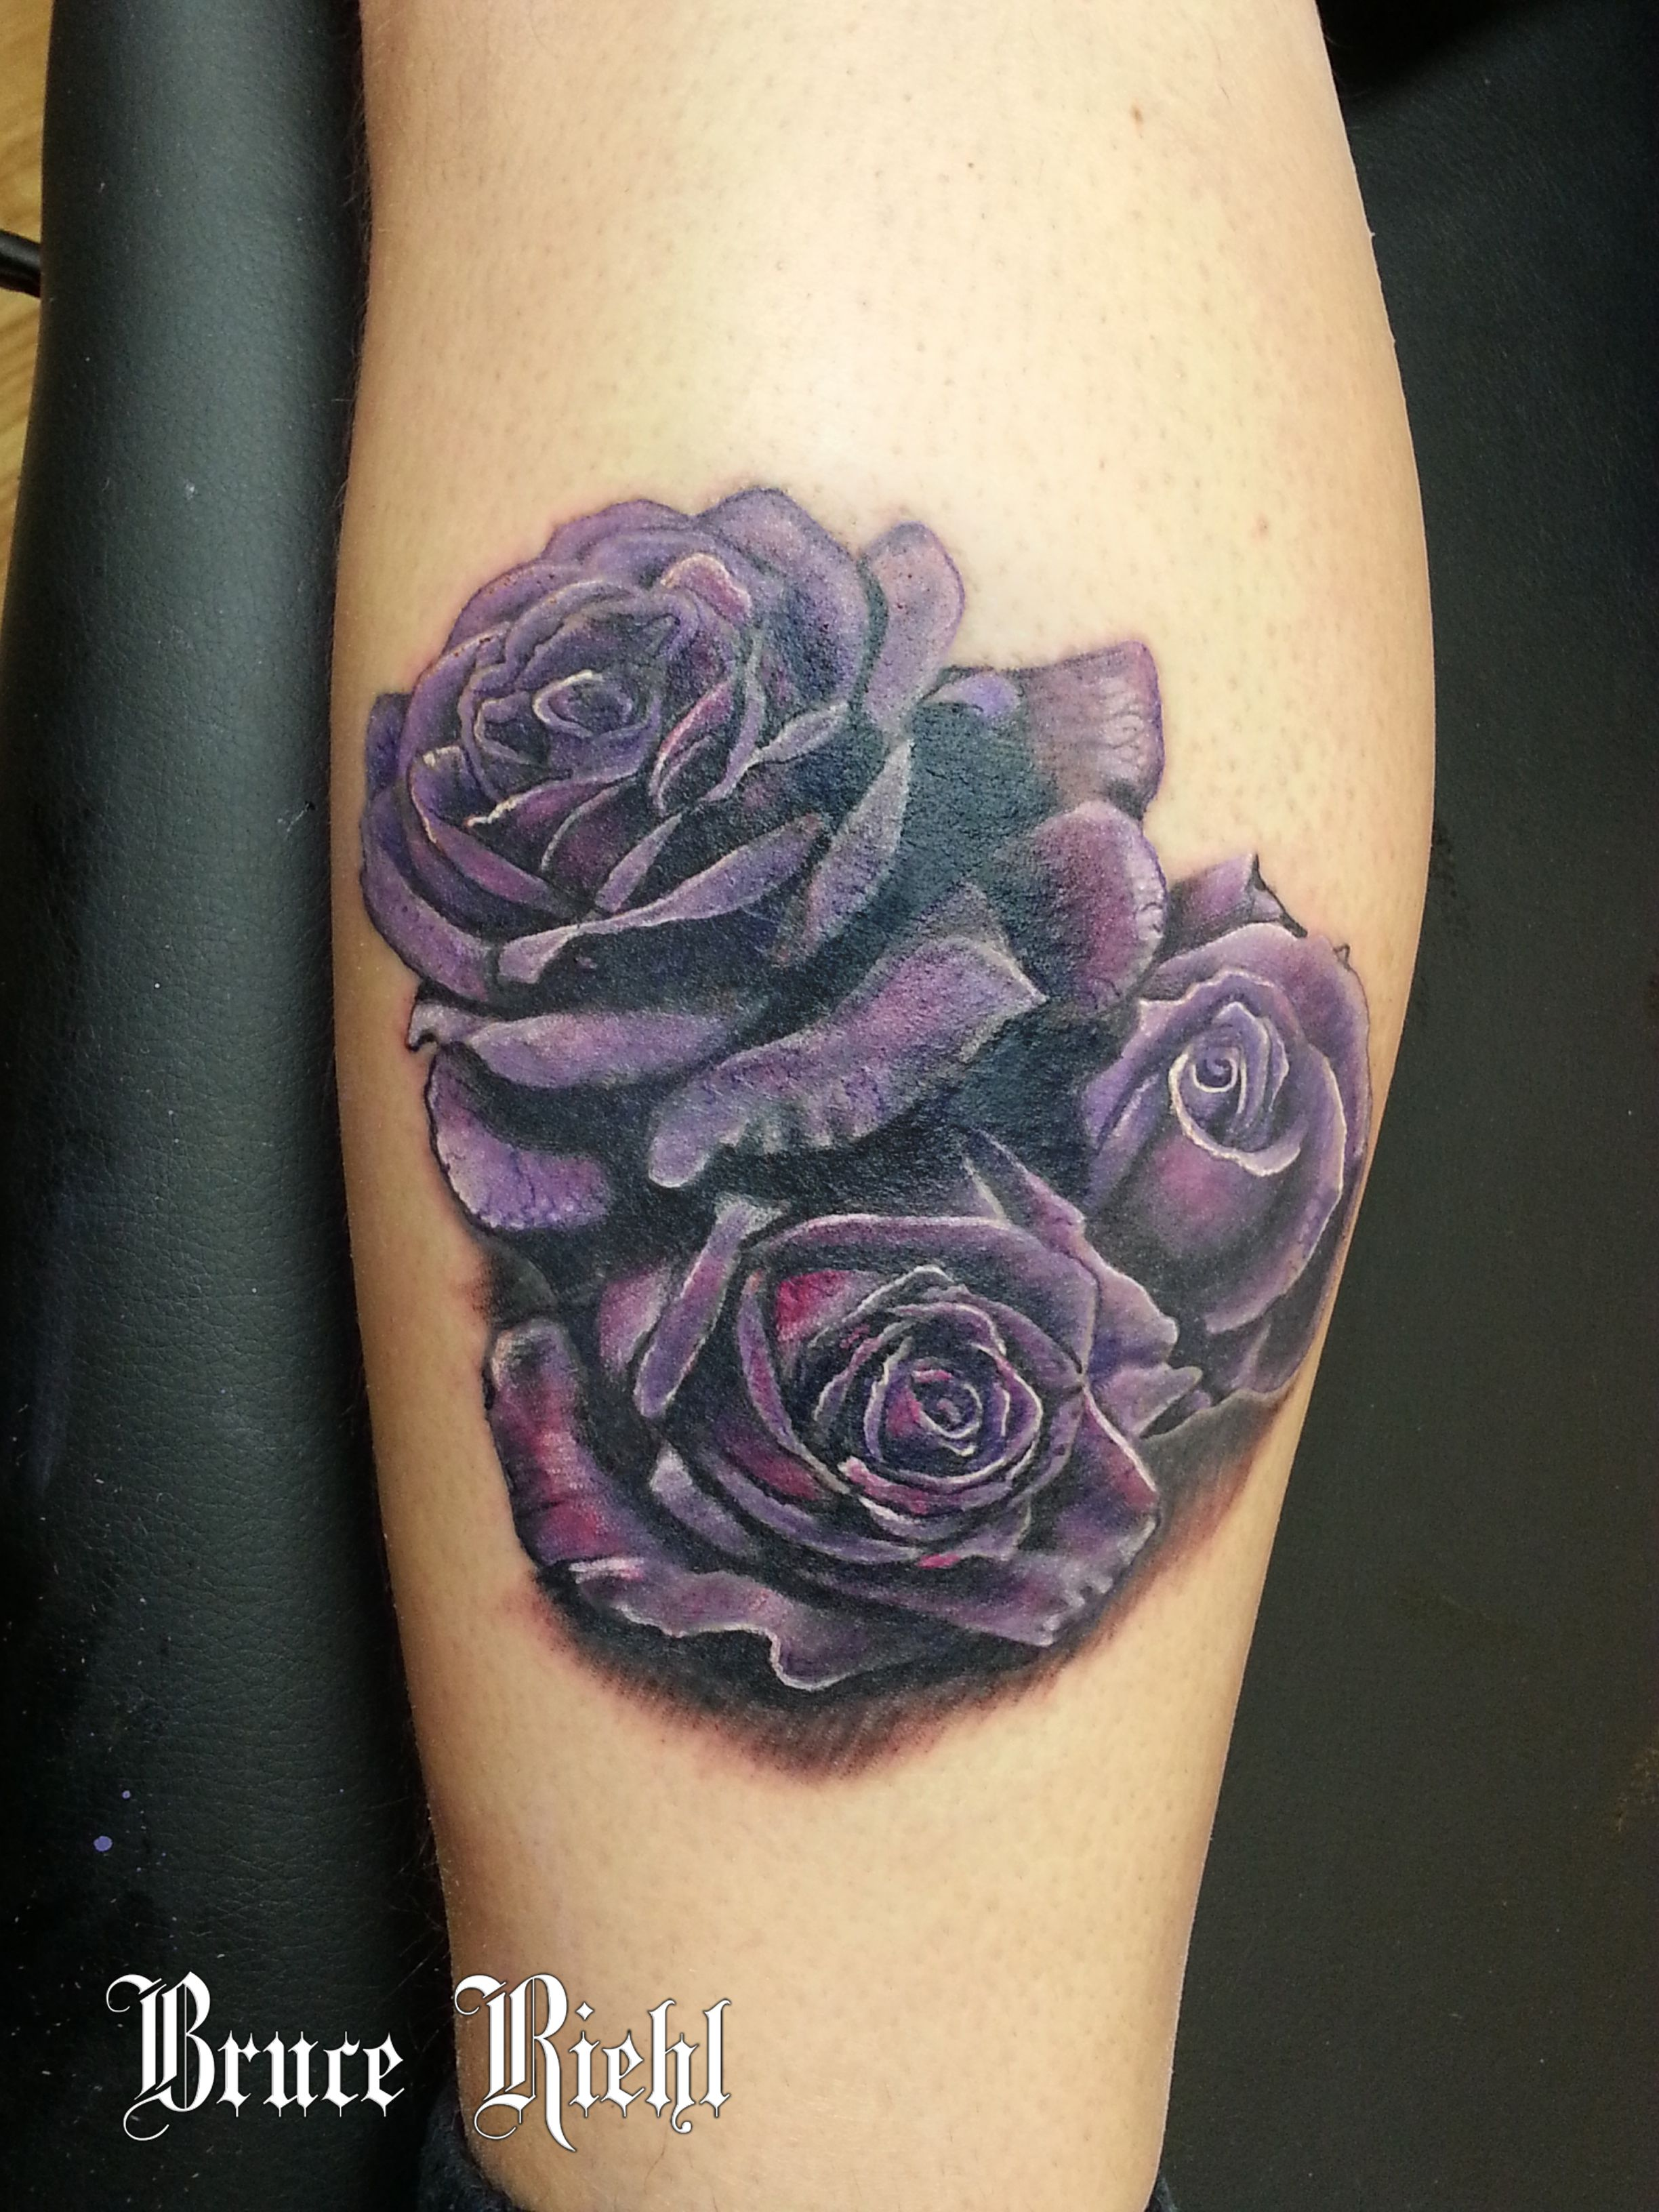 A Purple Realistic Rose Tattoo Cover Up On The Side Of A Leg By